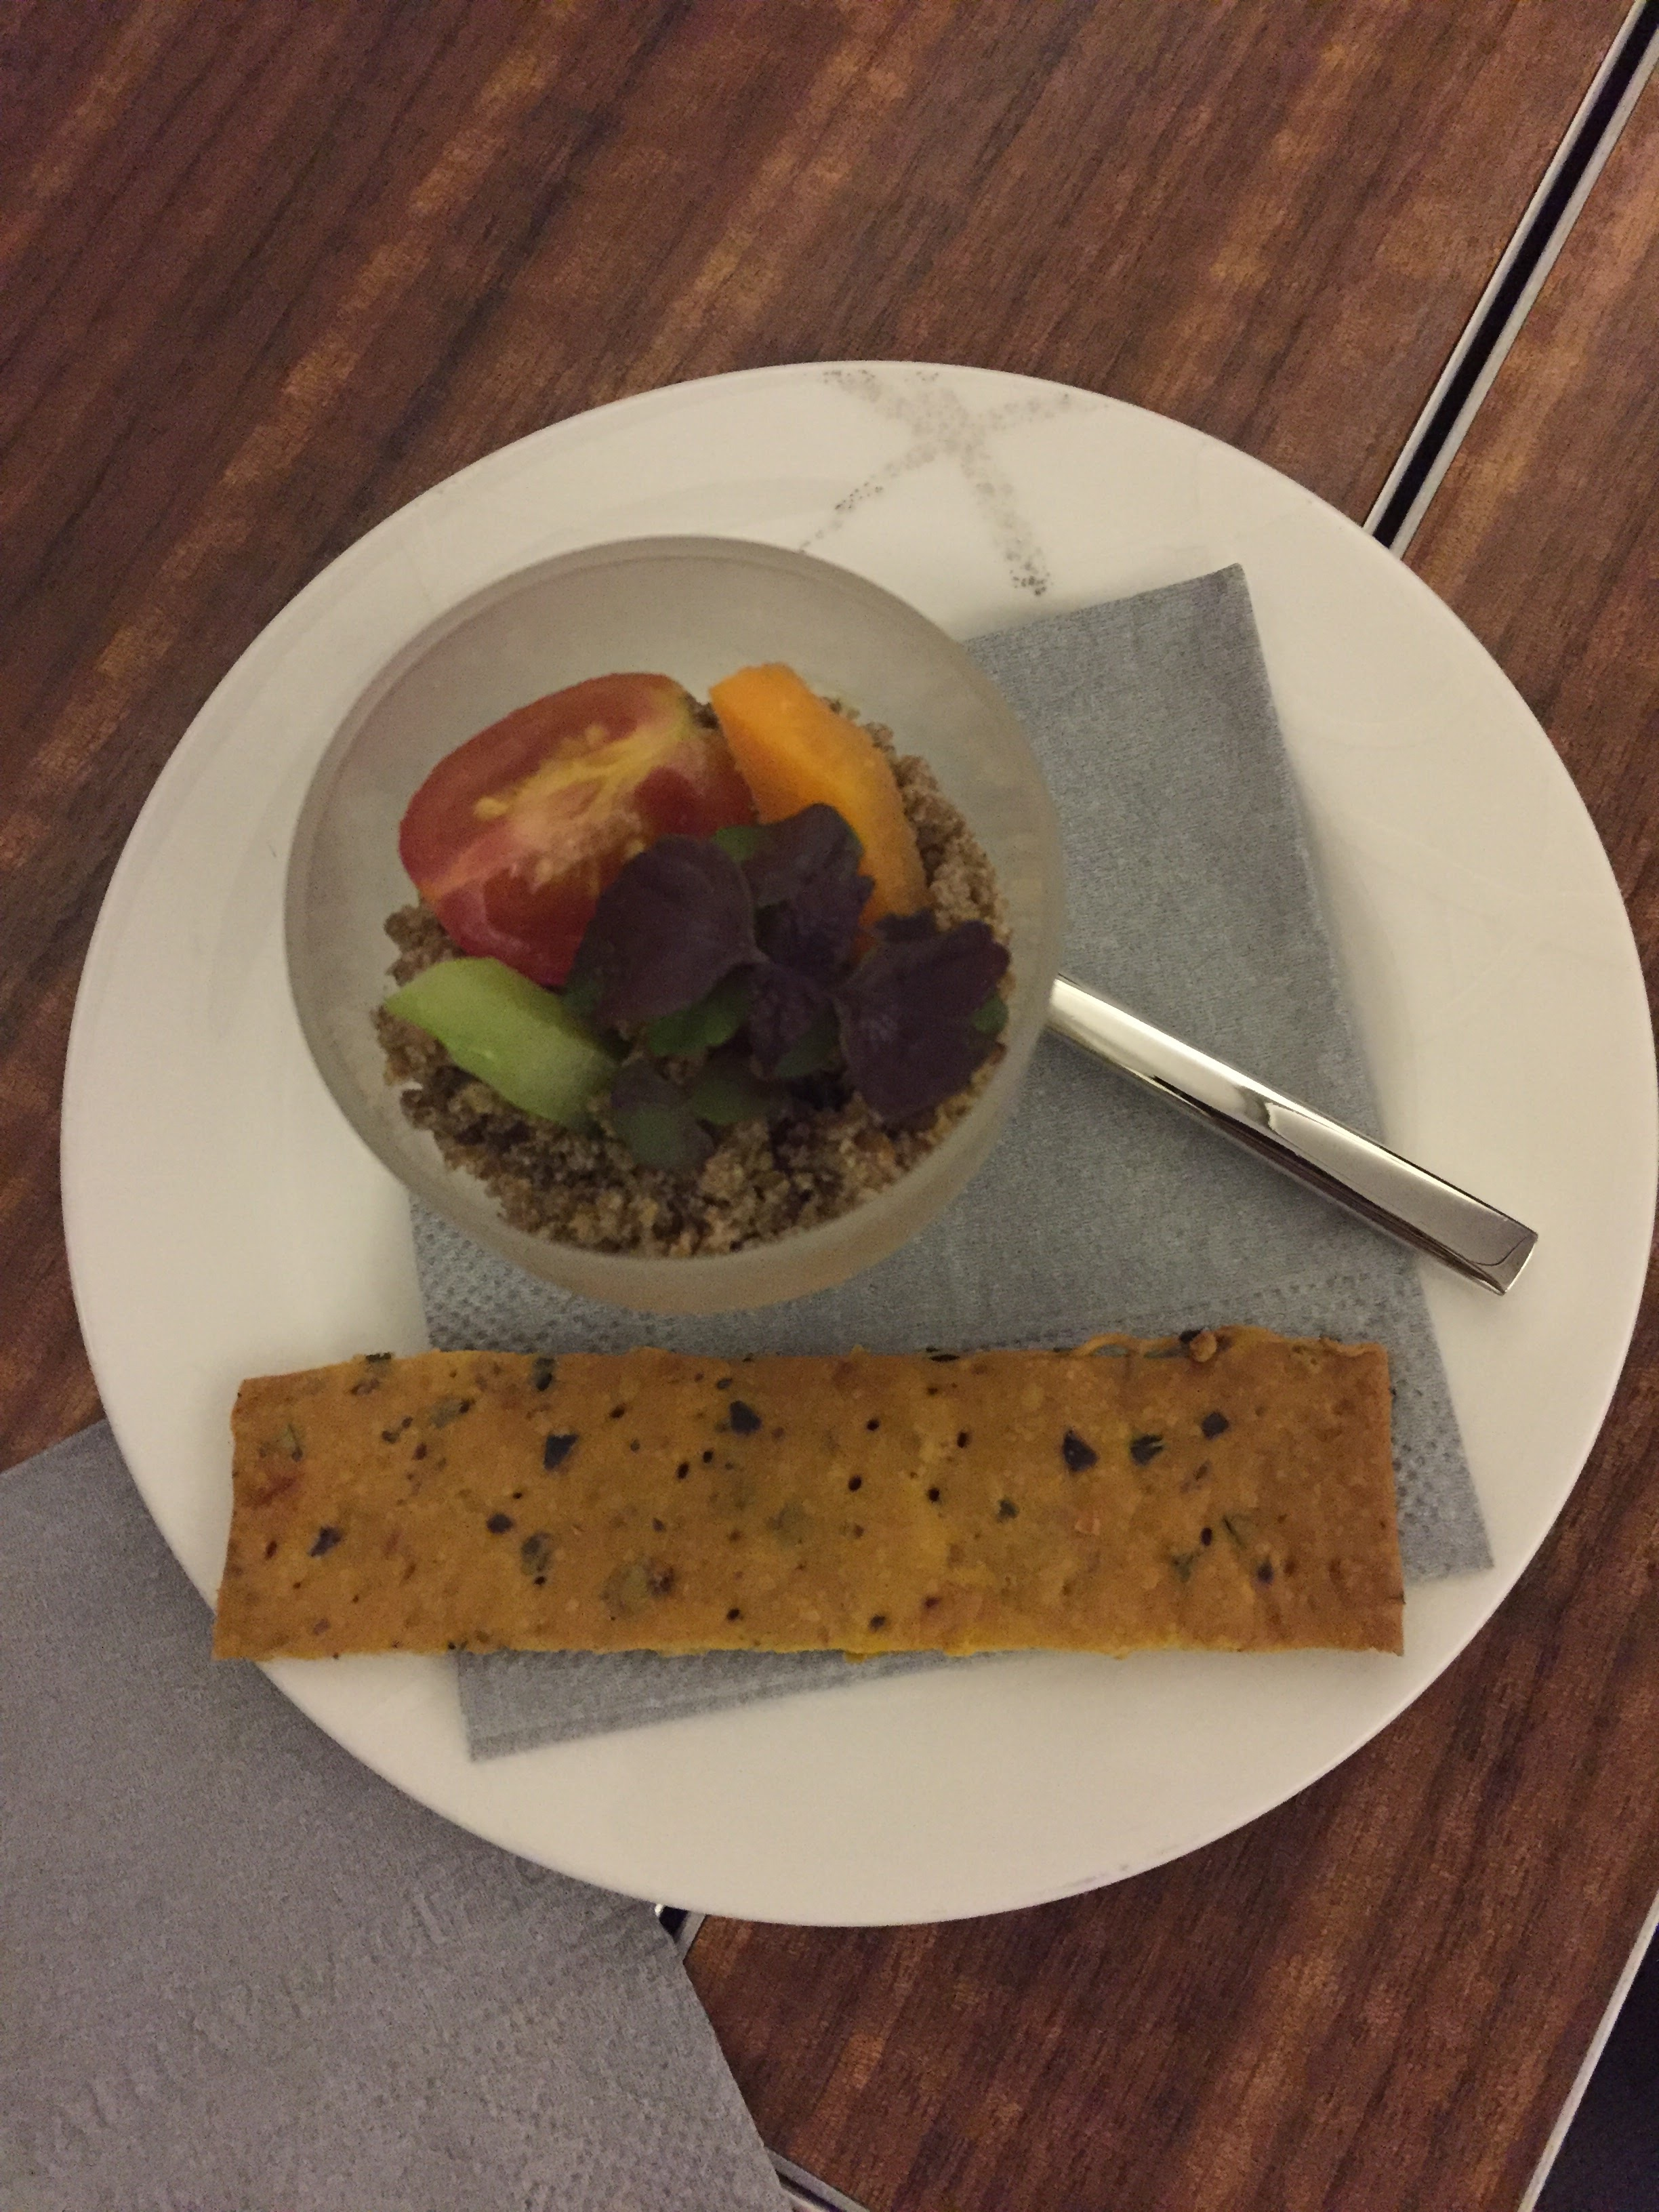 Cathay Pacific first class VGML (vegan)amuse-bouche